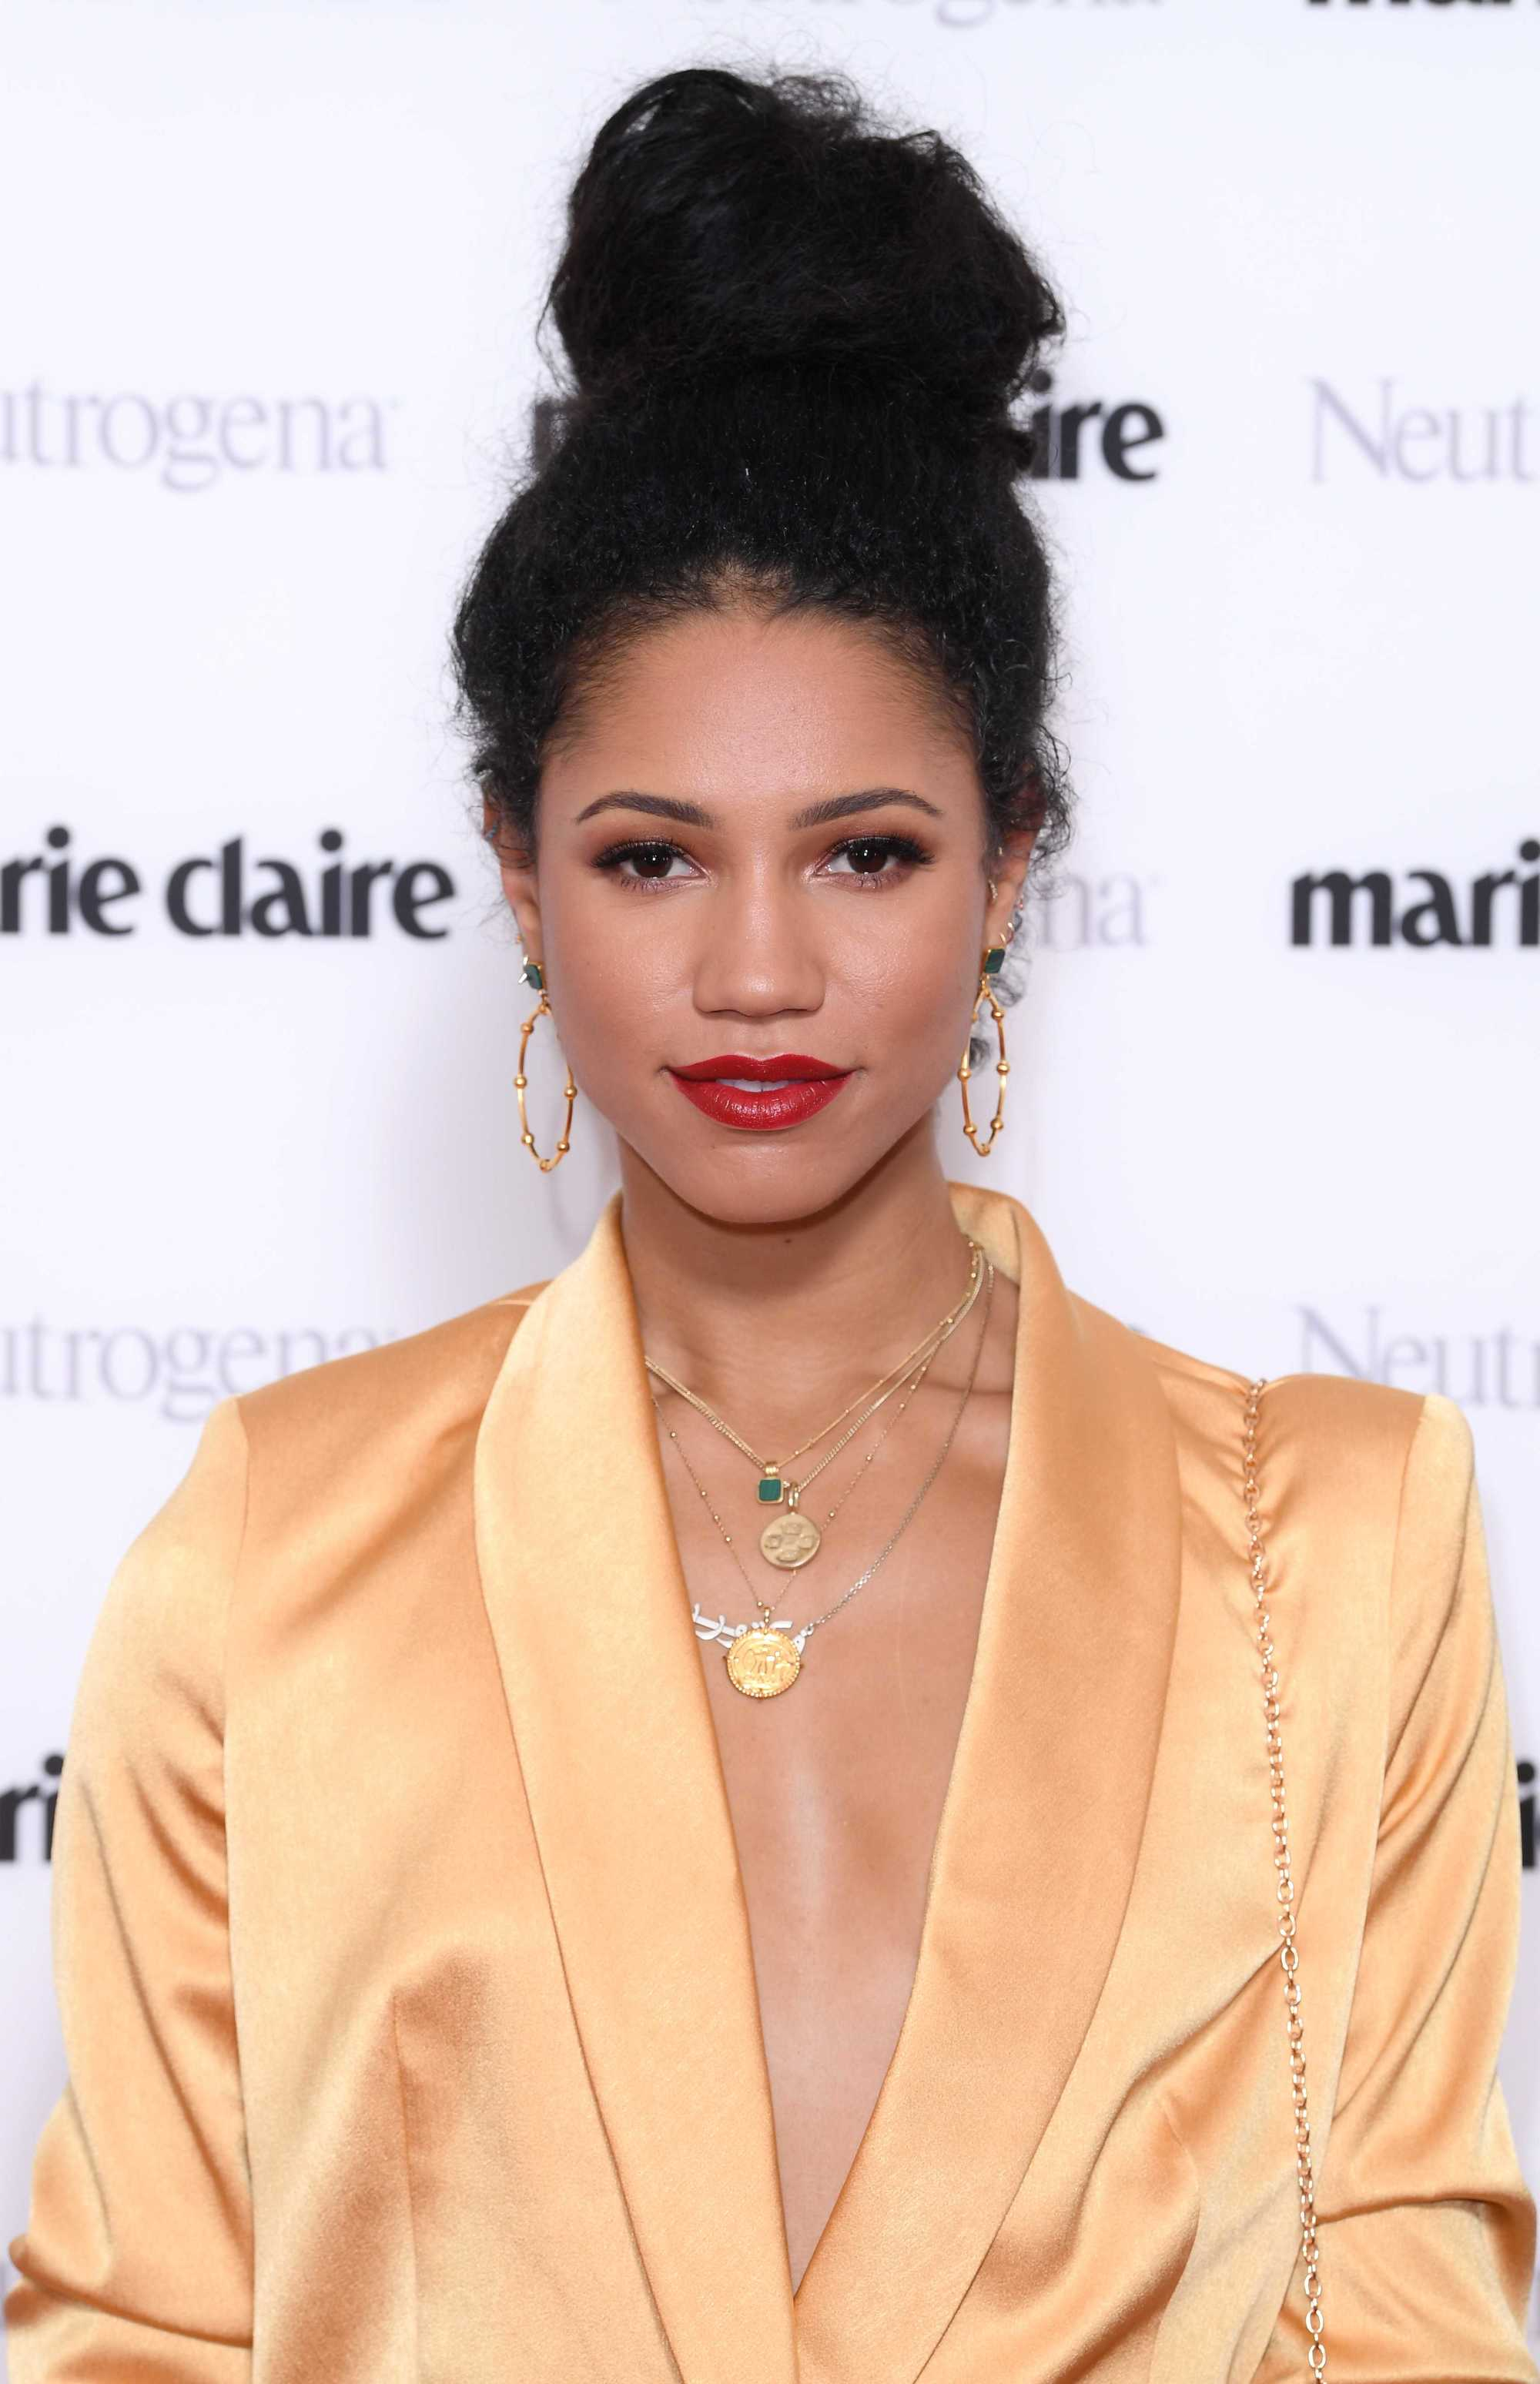 Hairstyles for thick hair: Vick Hope with her natural brown thick hair styled into a high bun